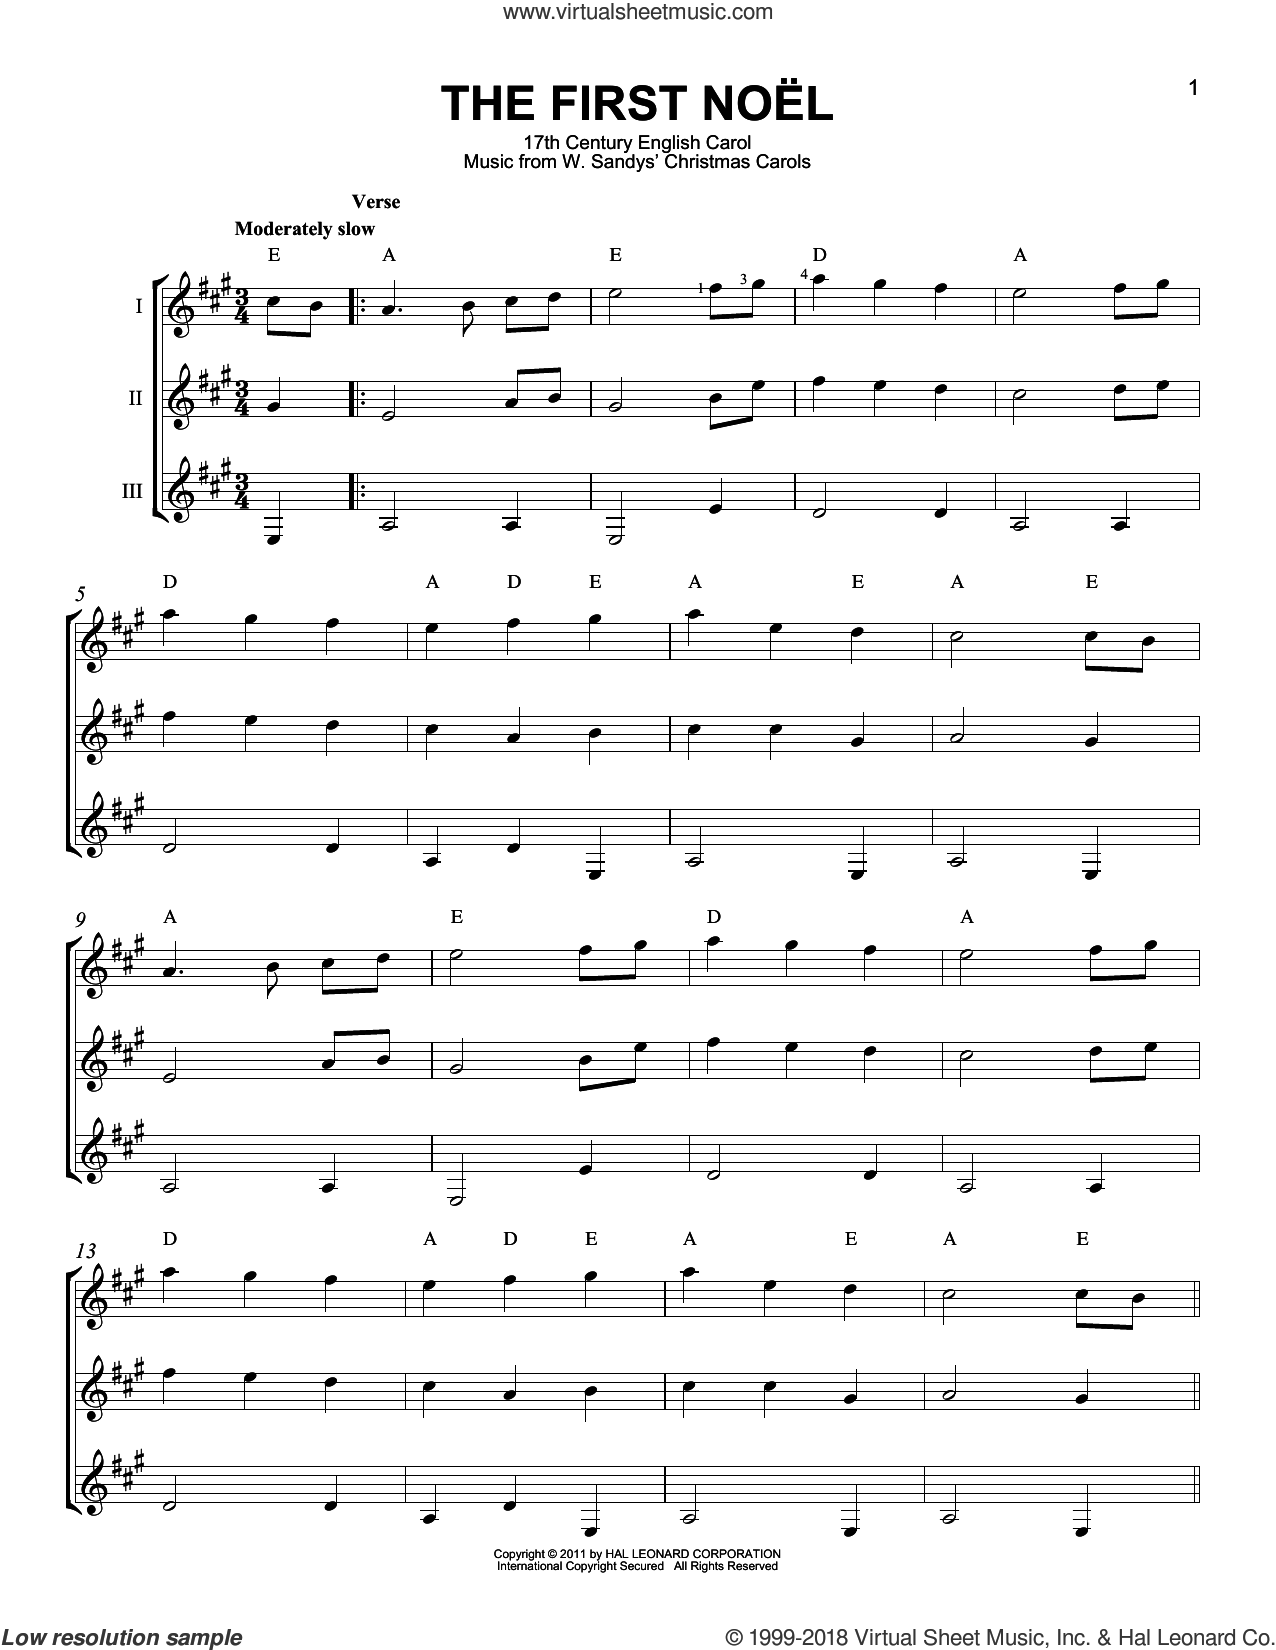 The First Noel sheet music for guitar ensemble by W. Sandys' Christmas Carols and Miscellaneous, intermediate skill level